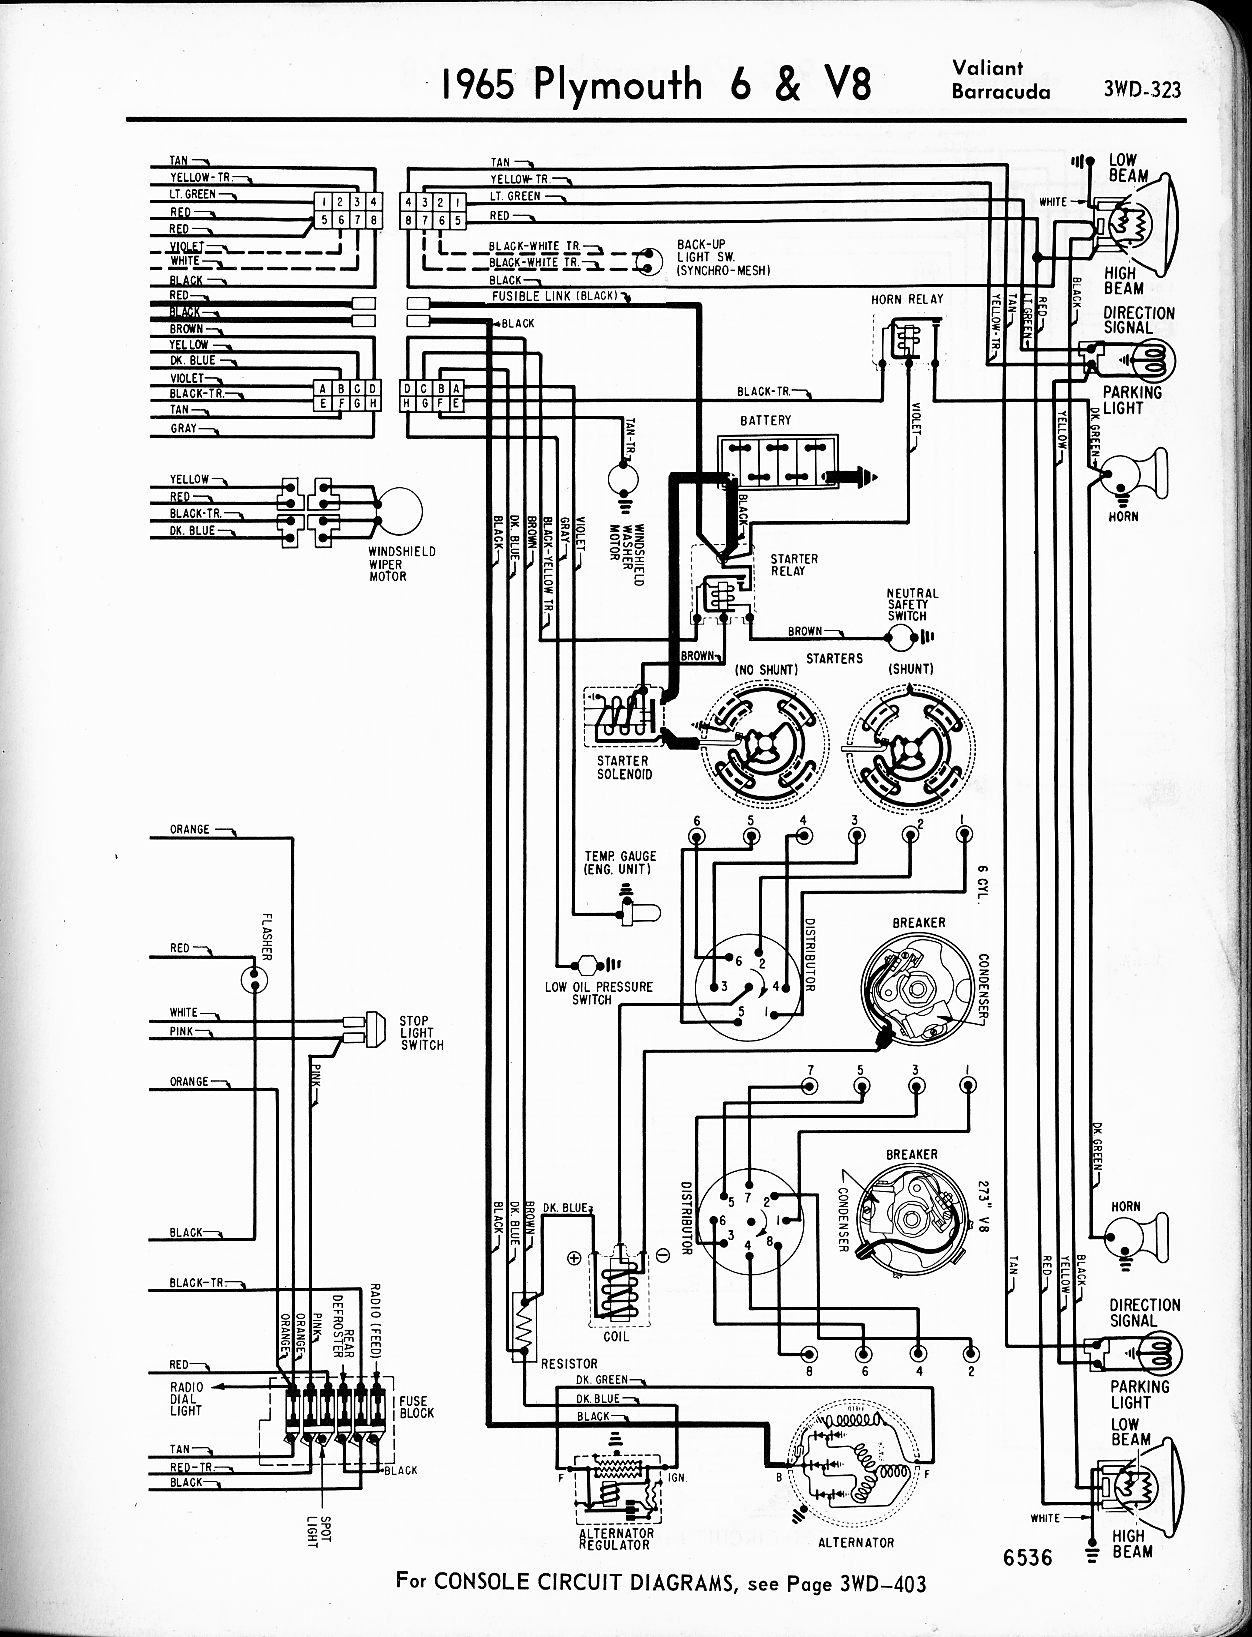 1956 - 1965 plymouth wiring - the old car manual project 1972 plymouth valiant wiring diagram